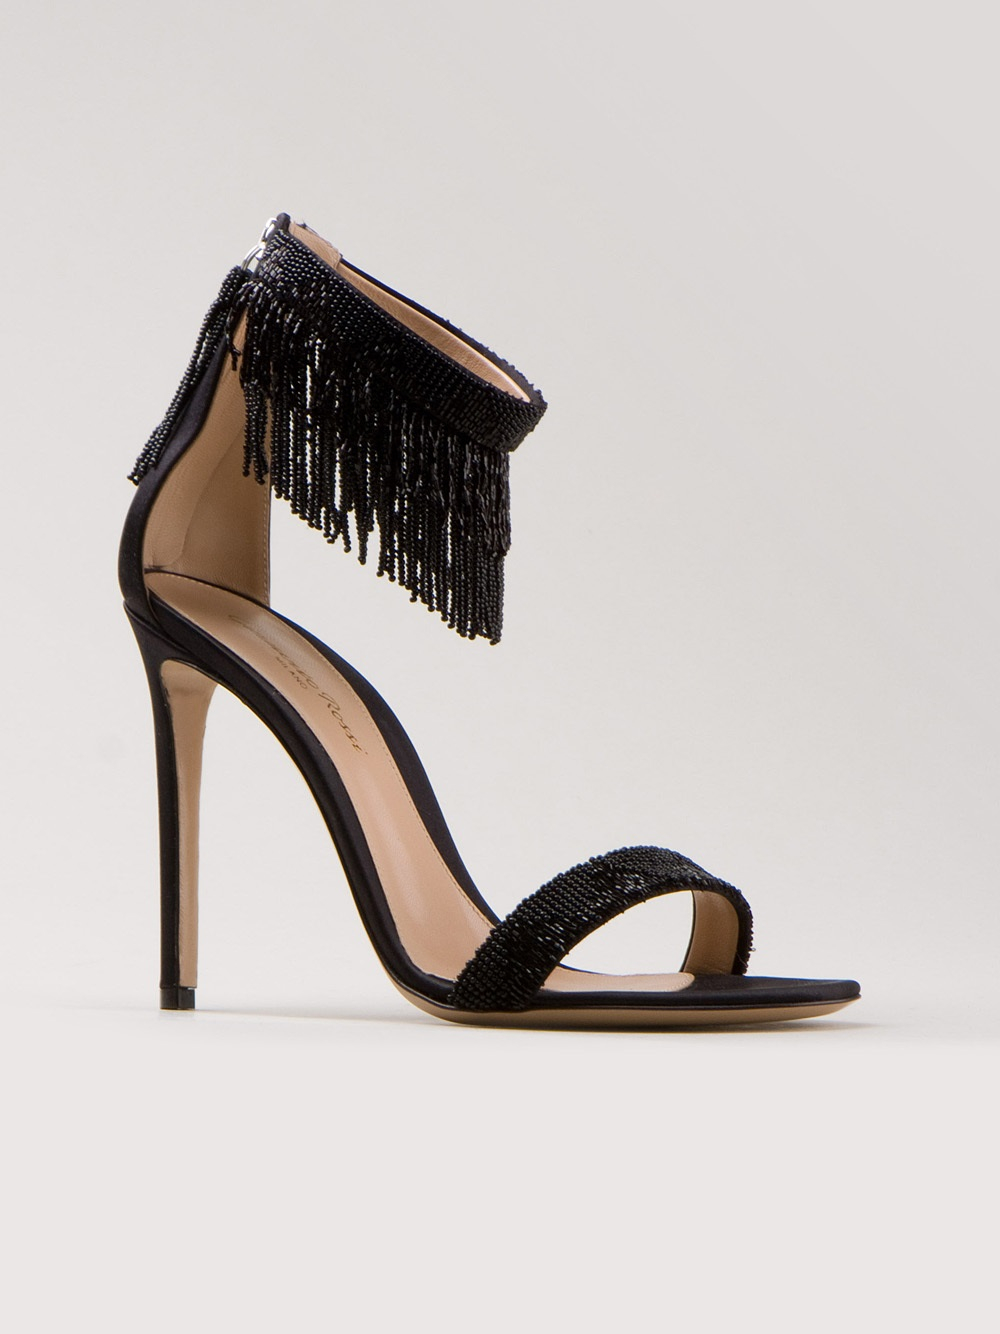 Gianvito Rossi Beaded Fringe Sandals how much cheap online KgCy4